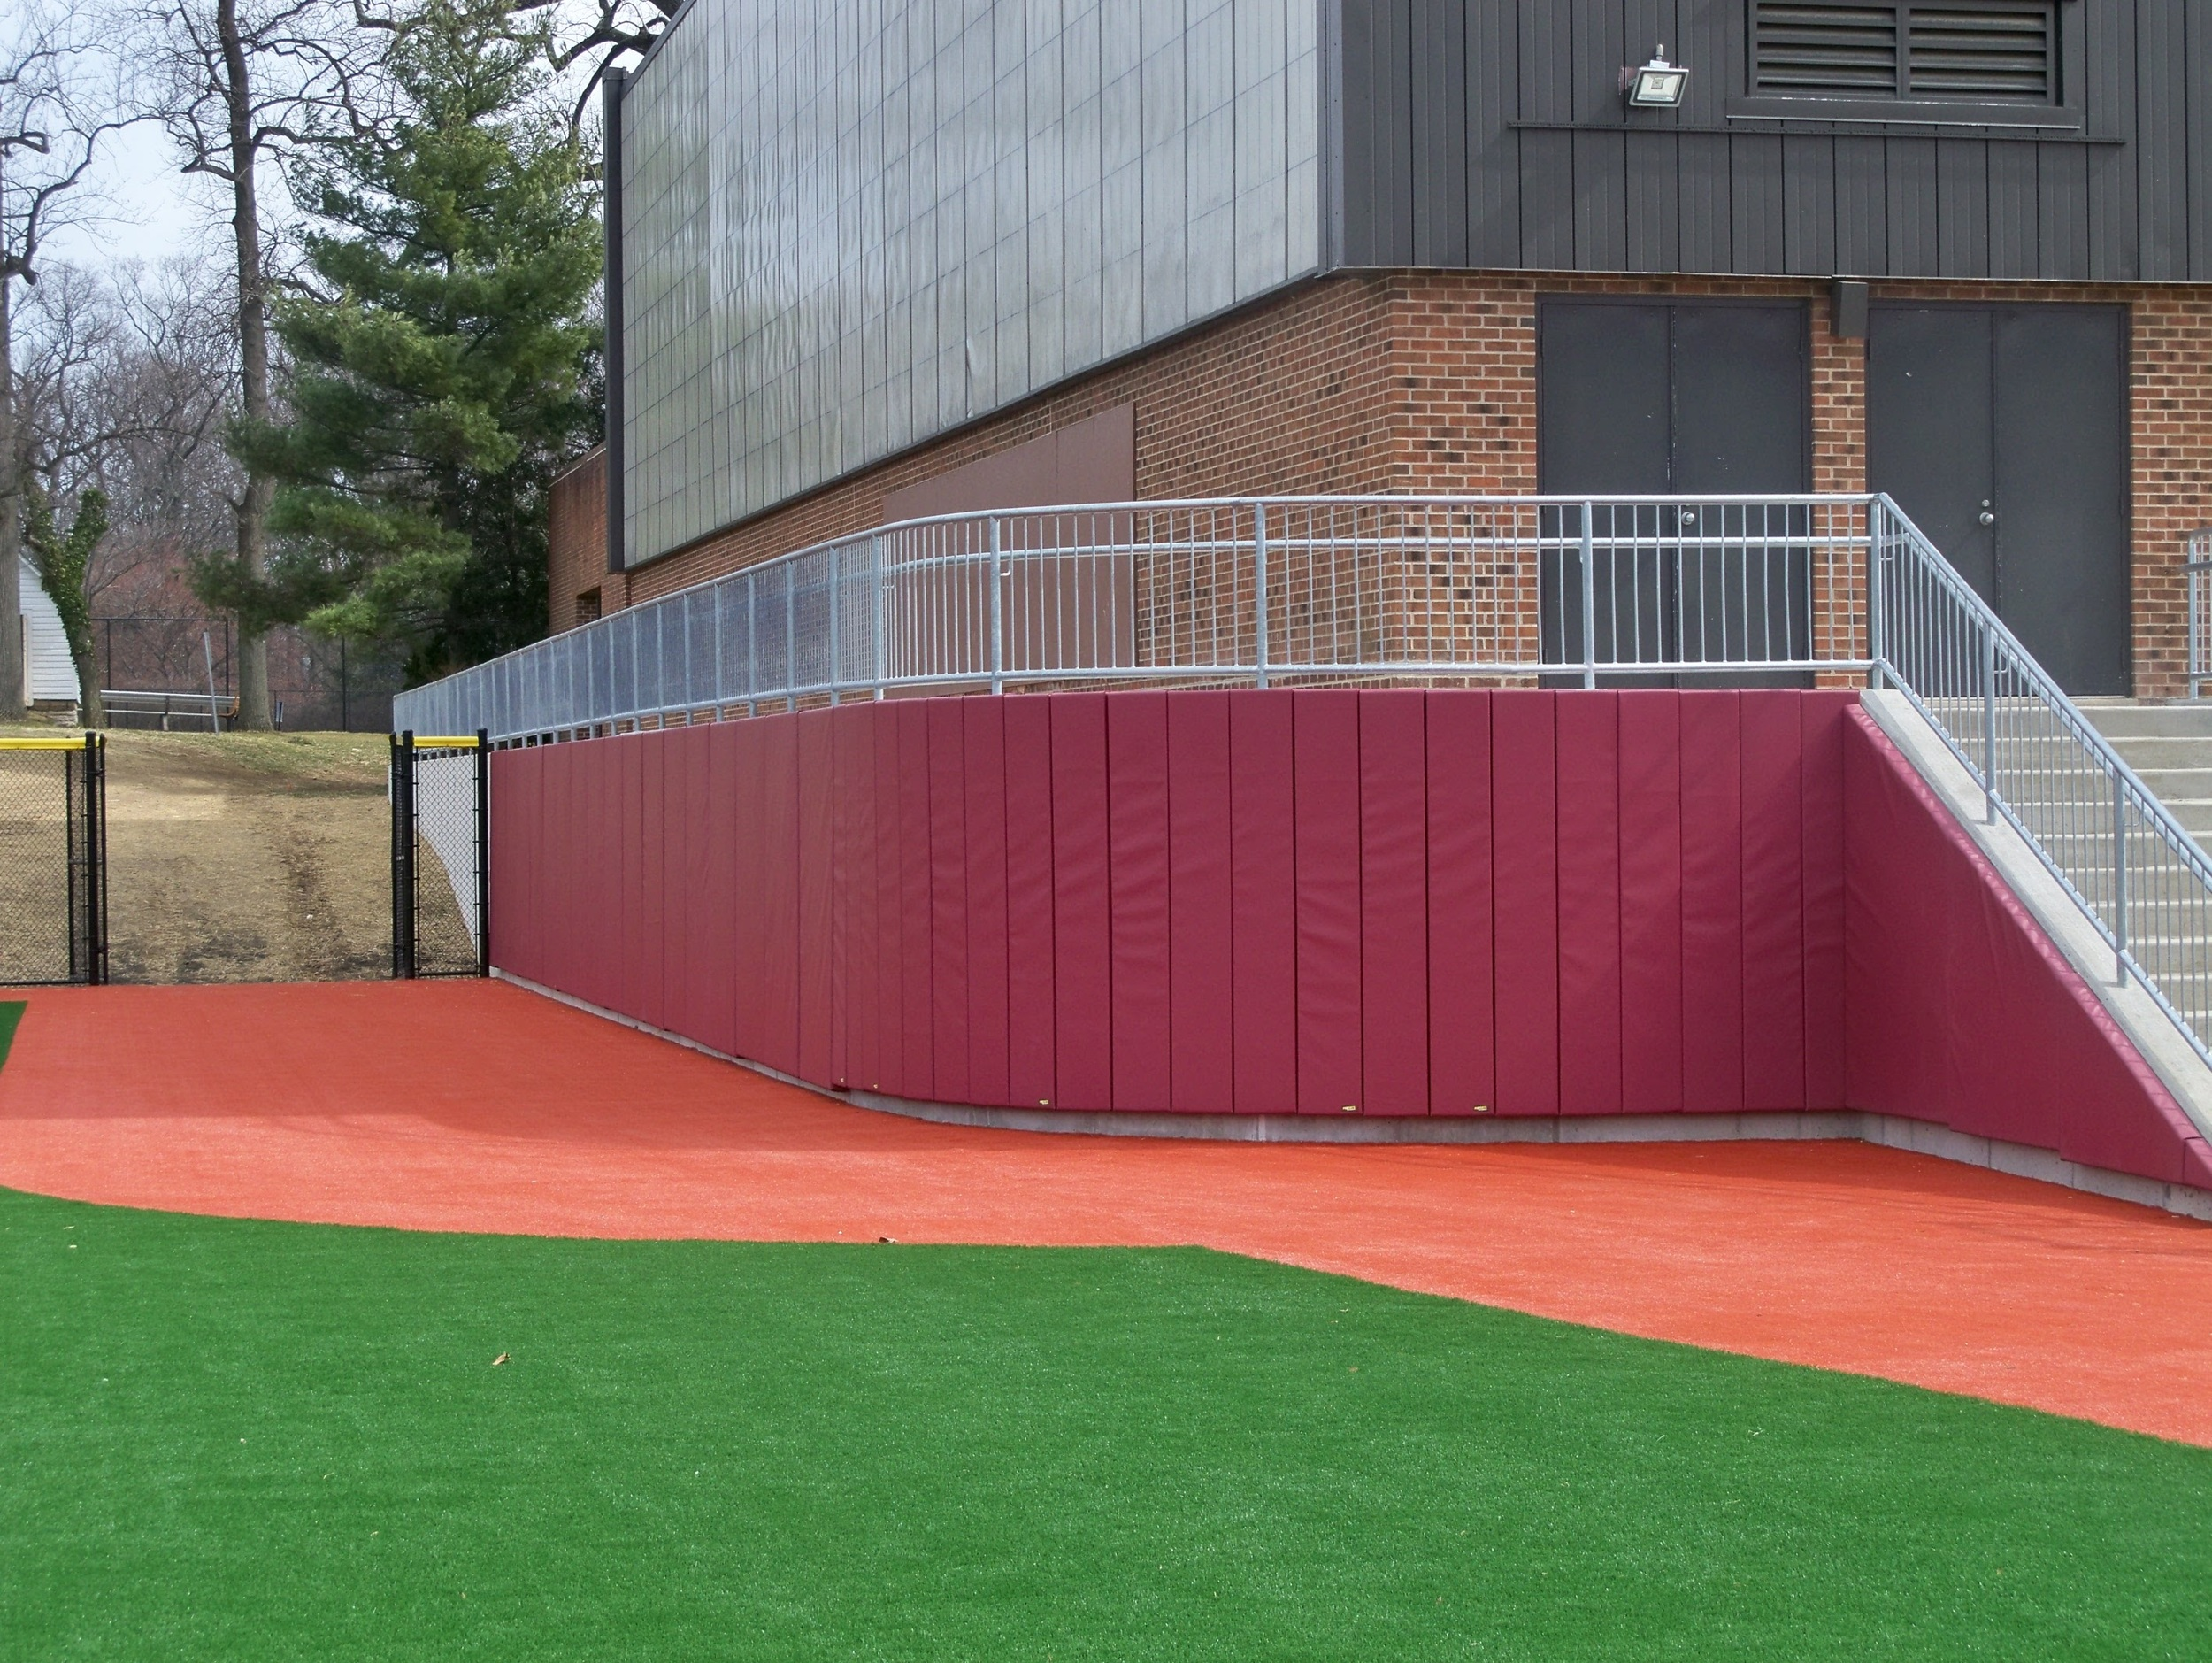 SJU 005 03.09.12 Curved Wall Padding at BB Outfield.jpg